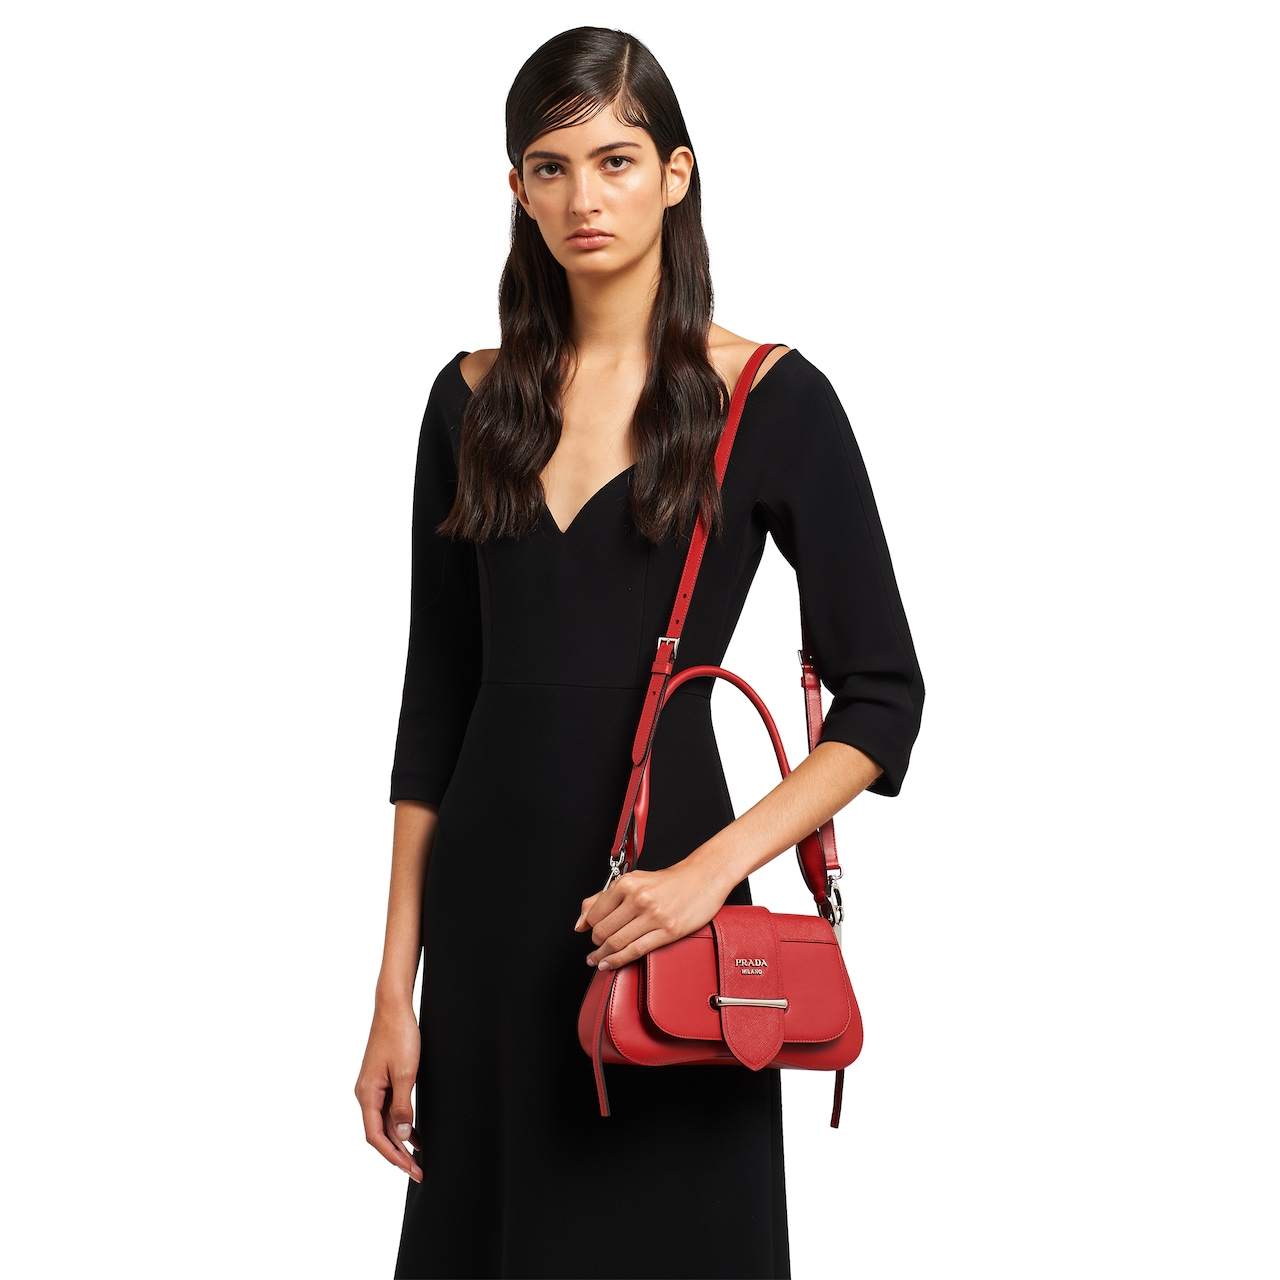 Prada Prada Sidonie shoulder bag 2